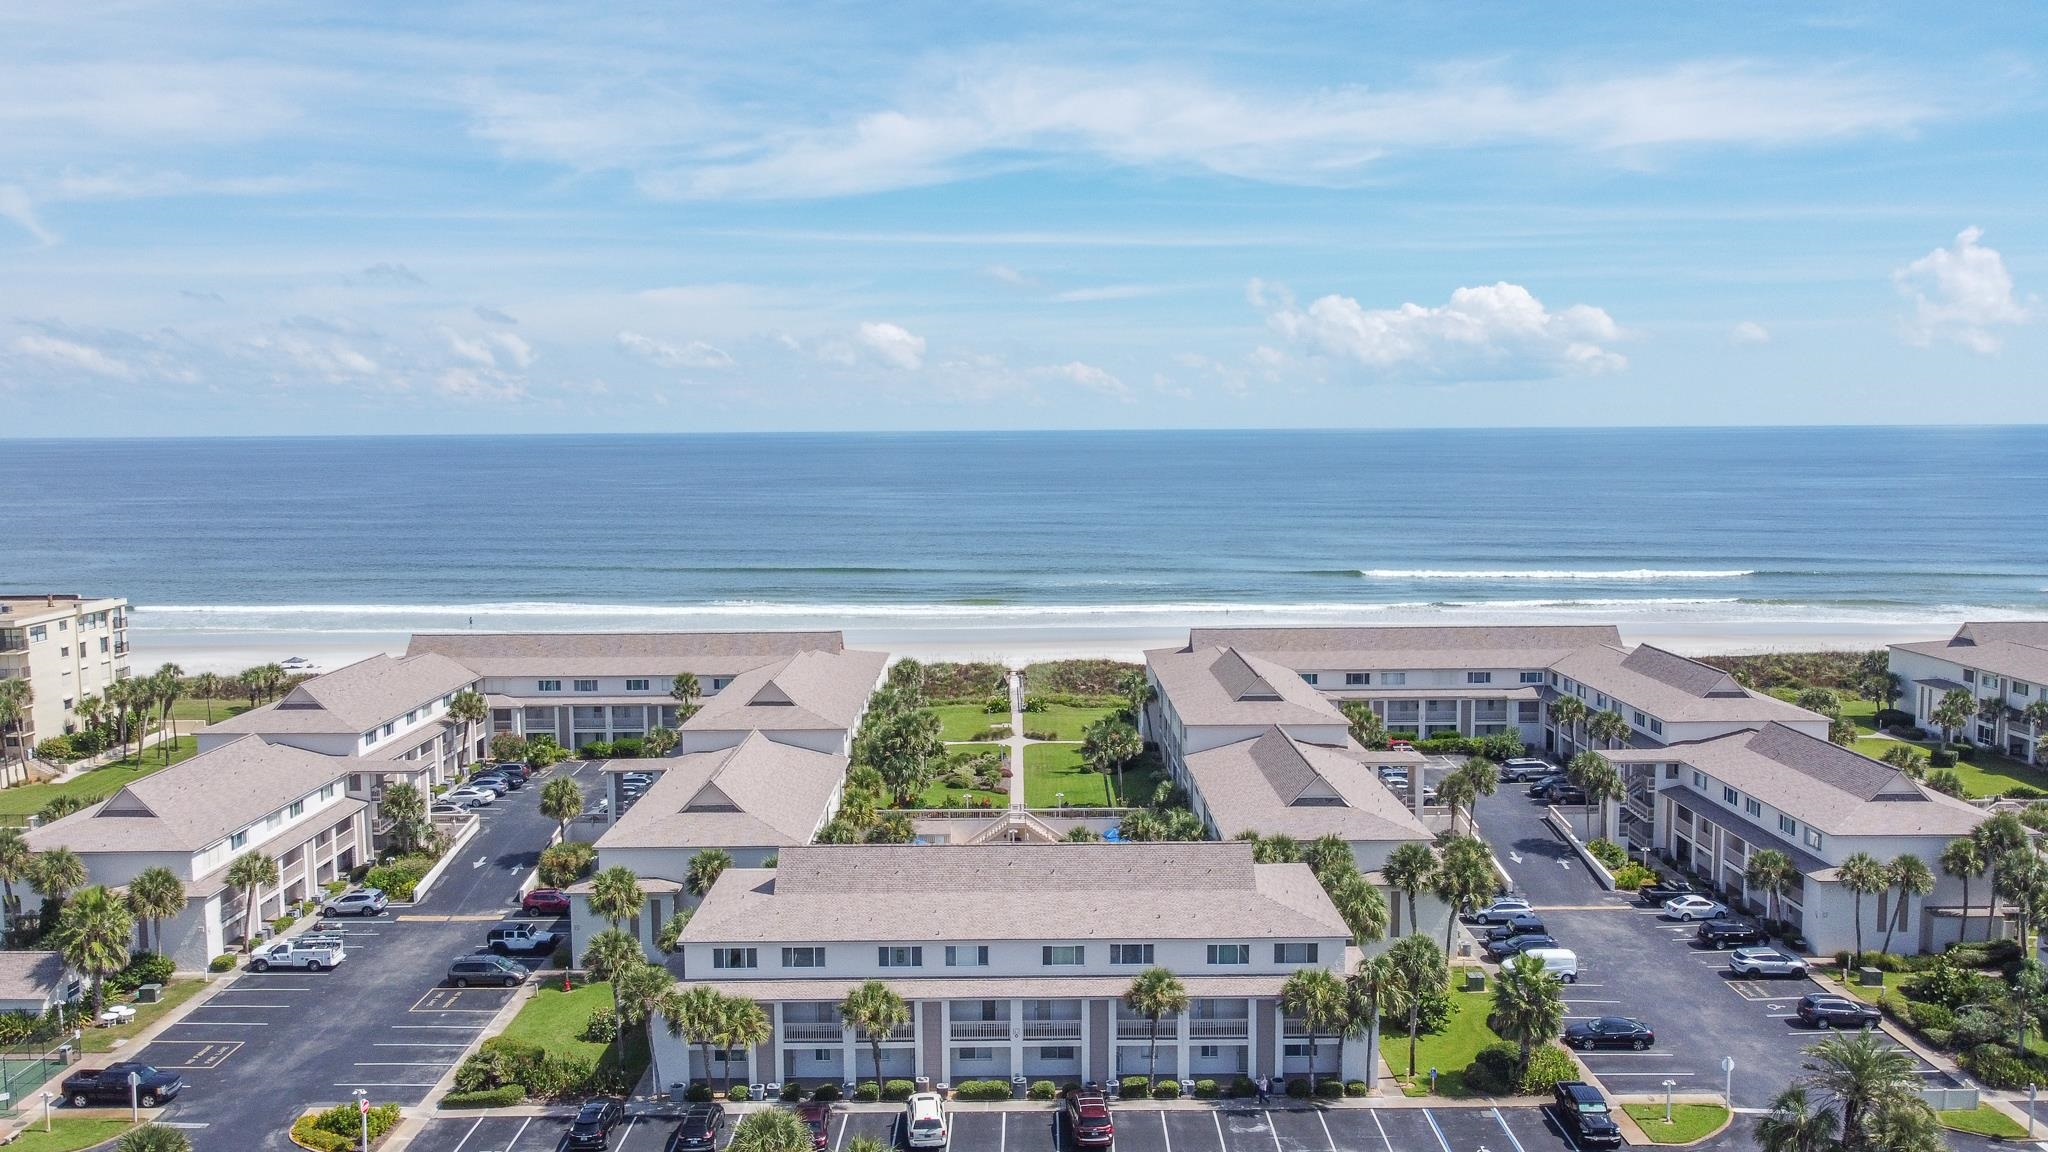 Pool side first floor unit. 2/2 fully furnished. Beautiful granite countertops and tile flooring in kitchen. Decor throughout the unit adds to the beachy feel. Presently on the Four Winds on-site rental program. Nothing to do but enjoy!